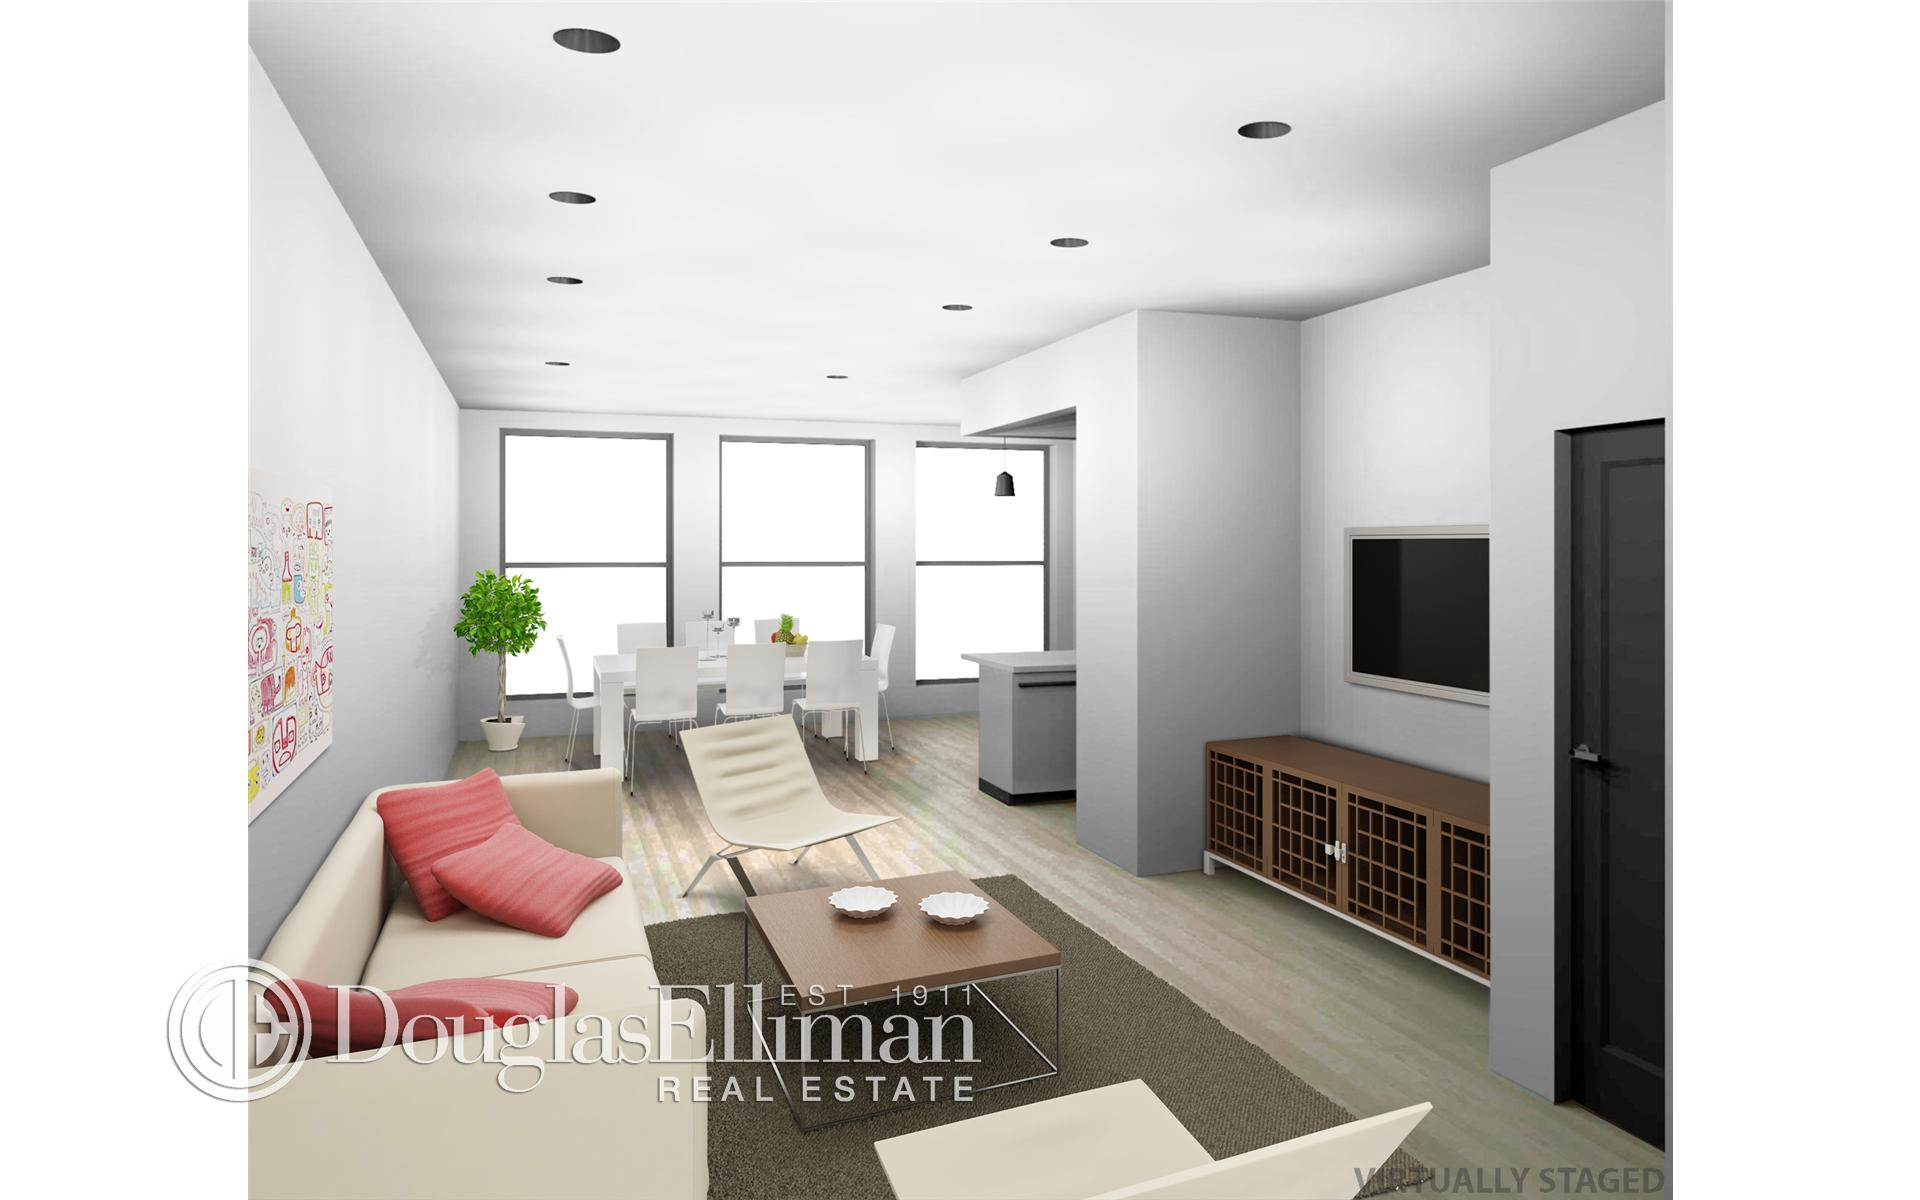 Condominium for Sale at The Maurice, The Maurice, 151 Lenox Avenue New York, New York 10026 United States